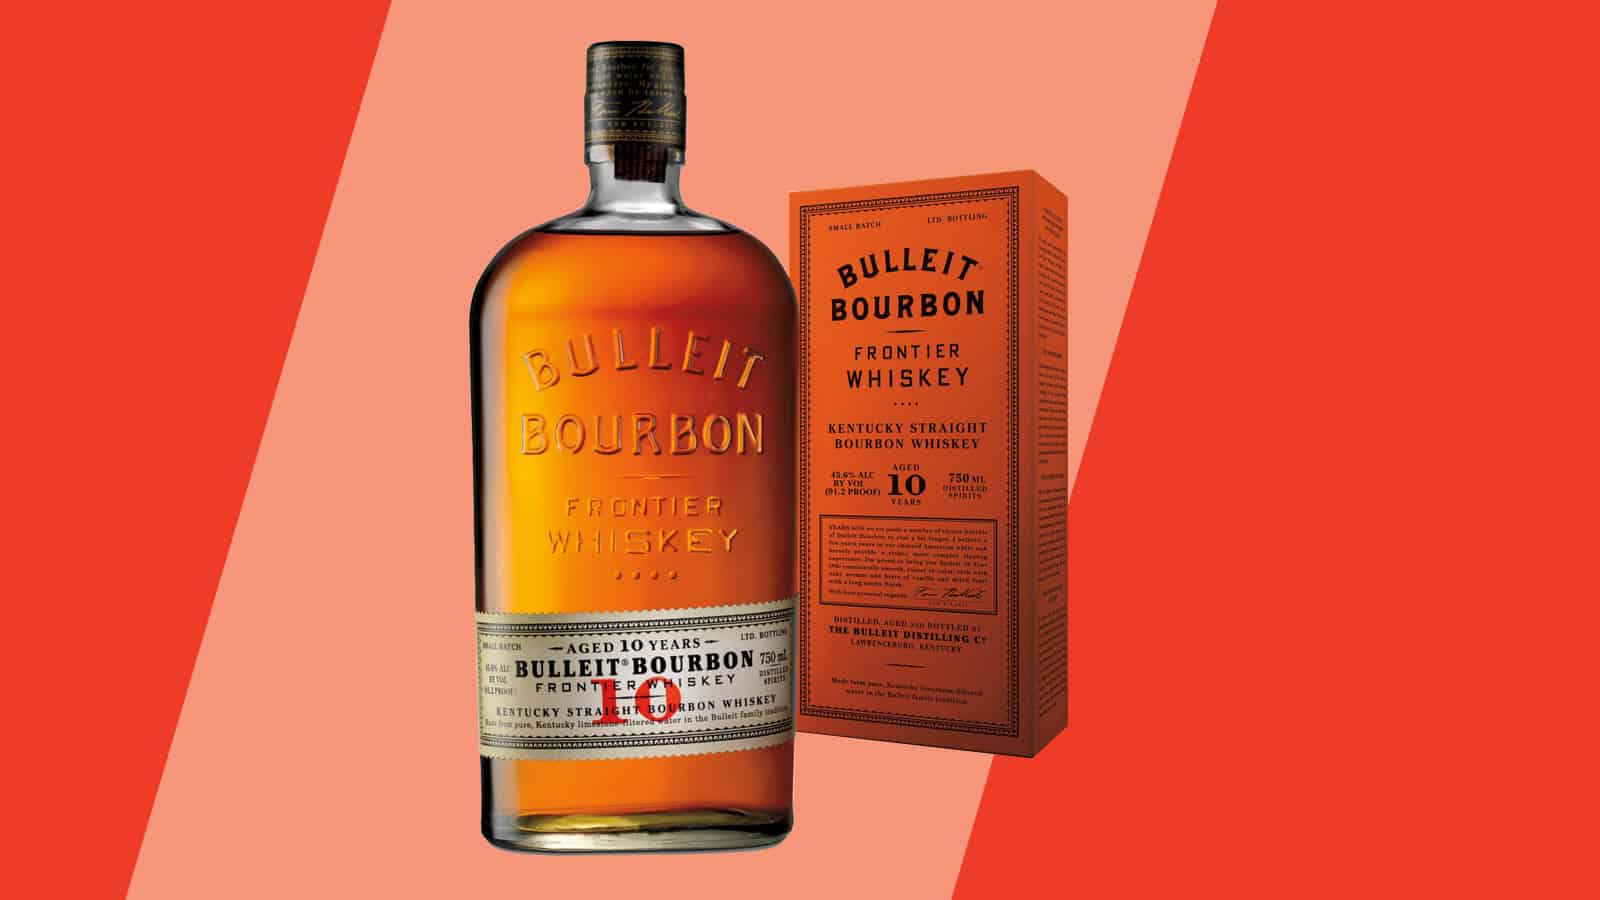 Bulleit Bourbon 10 Year Bottle